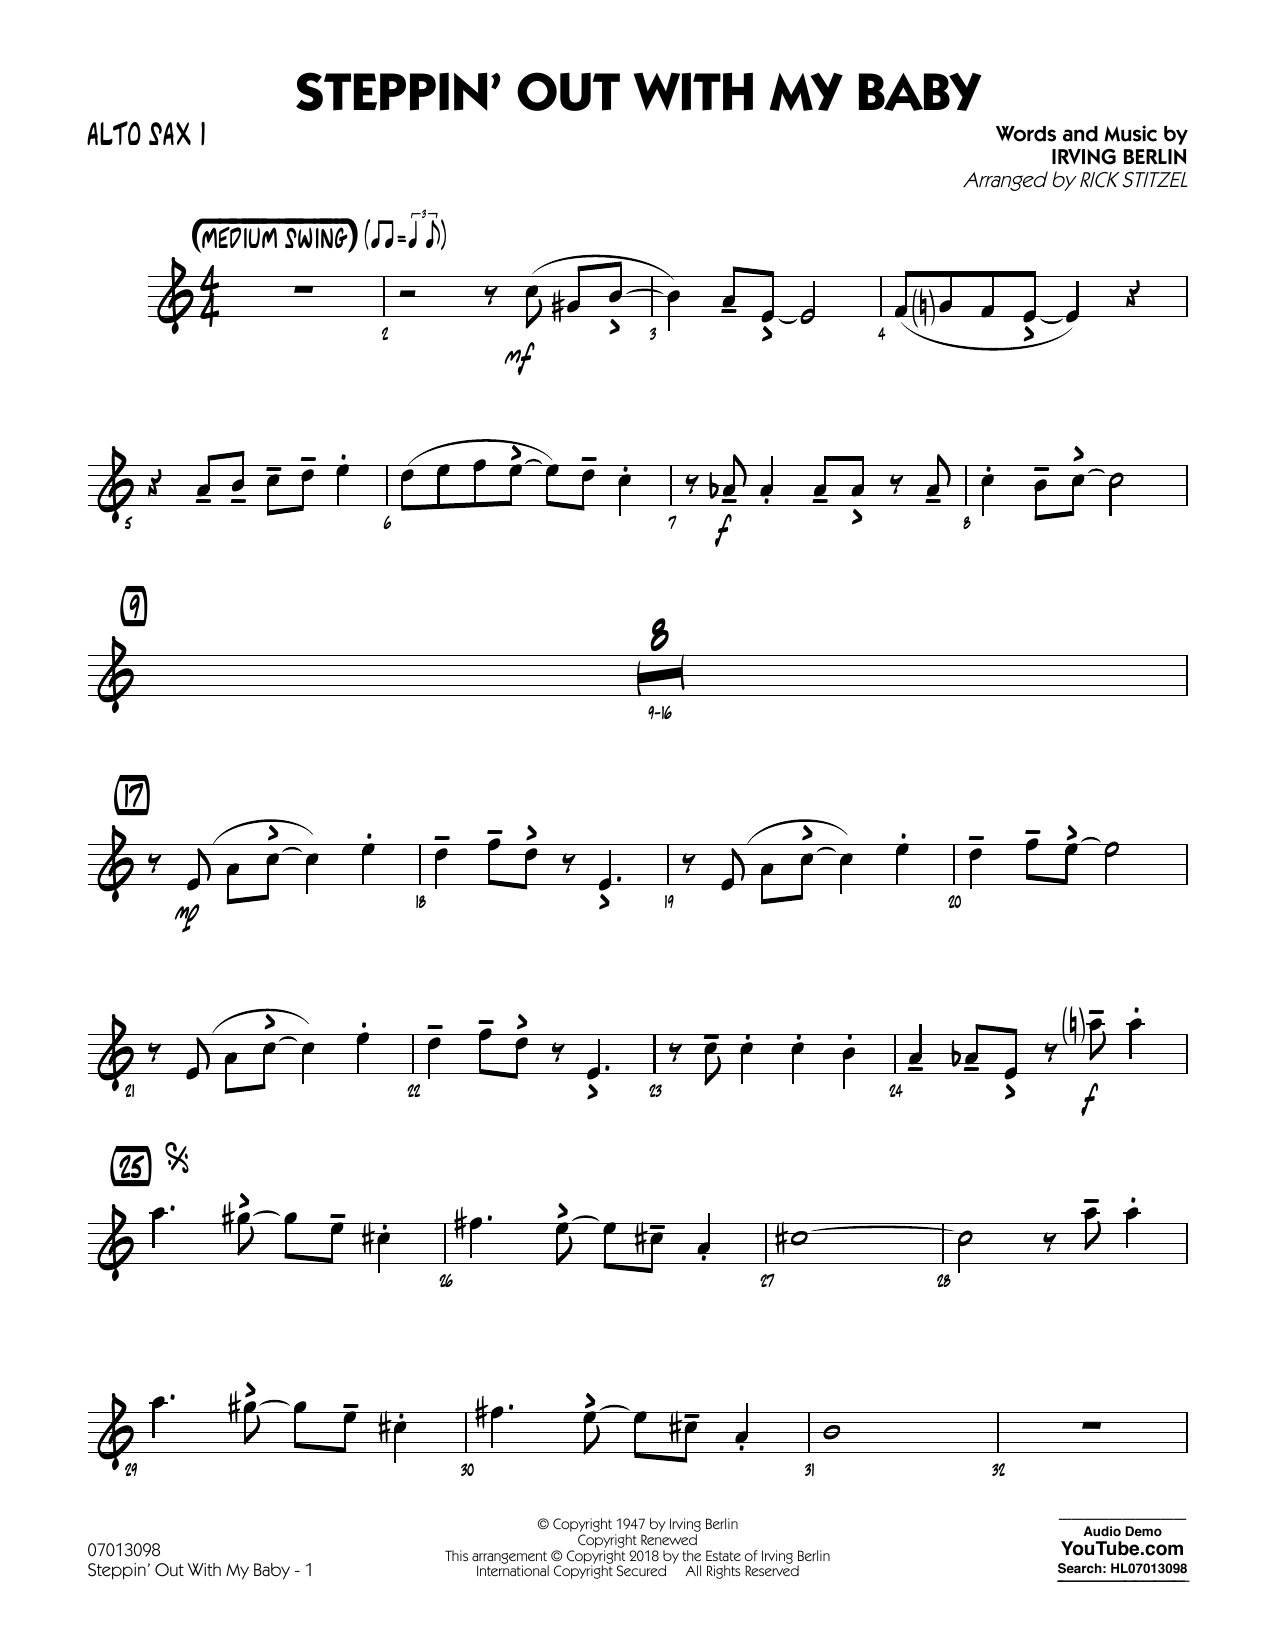 Rick Stitzel Steppin' Out with My Baby - Alto Sax 1 sheet music notes printable PDF score